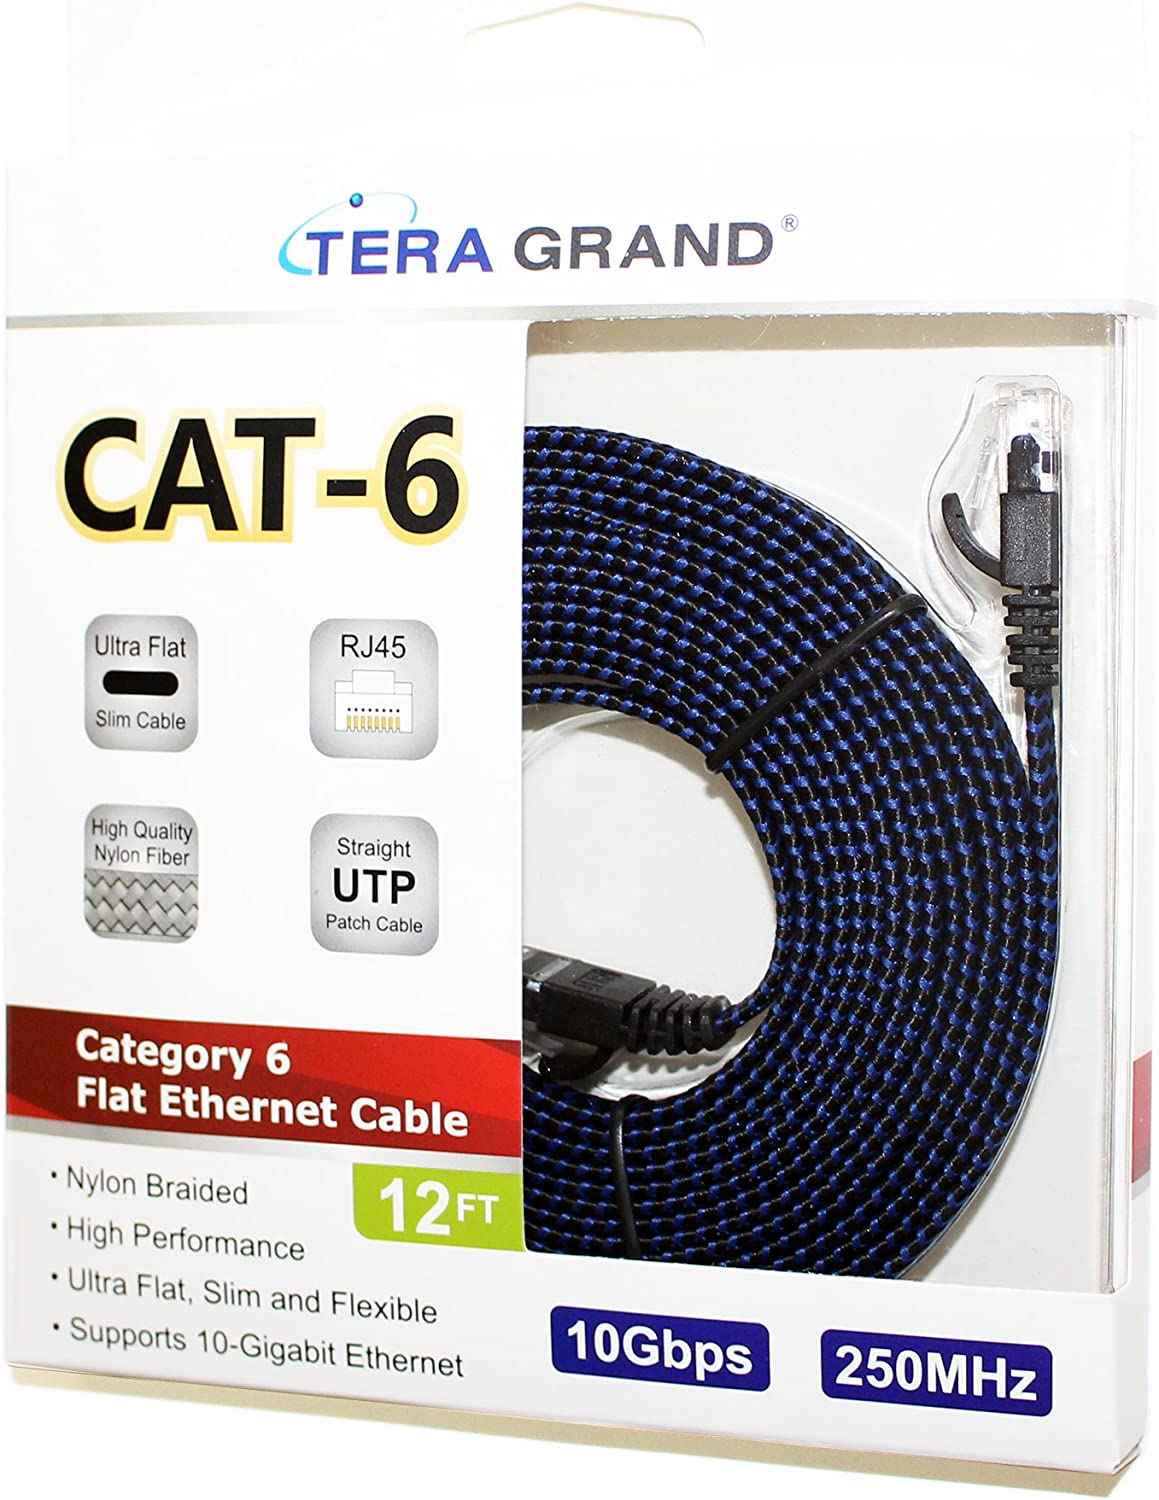 Black//Blue Computer Internet LAN Cable with Snagless RJ45 Connectors 25 Feet 25 ft CAT6 10 Gigabit Ethernet Ultra Flat Braided Network Cable Tera Grand